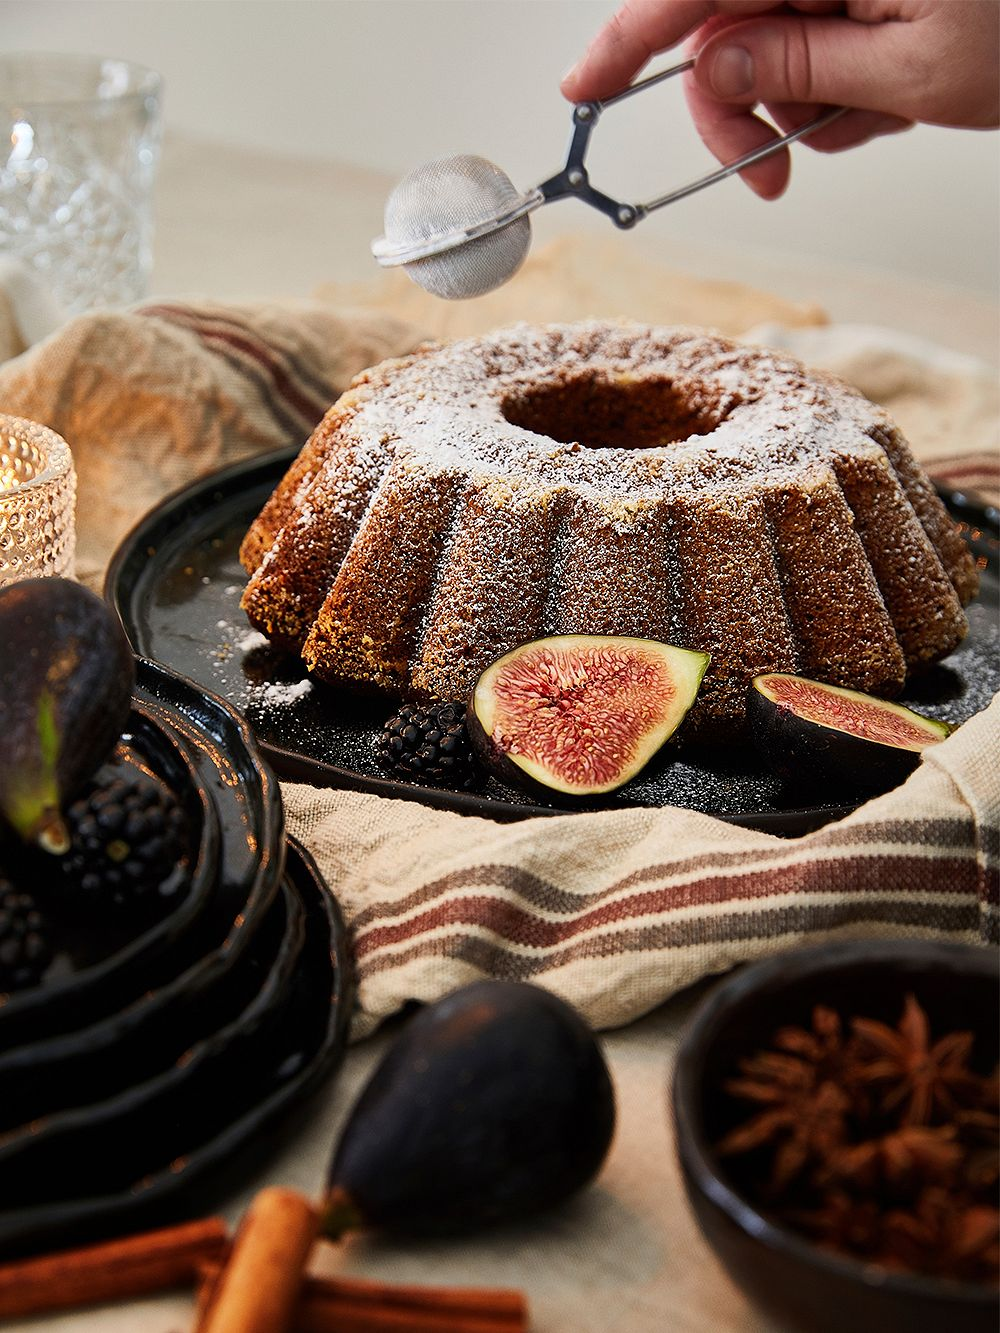 Date cake with figs